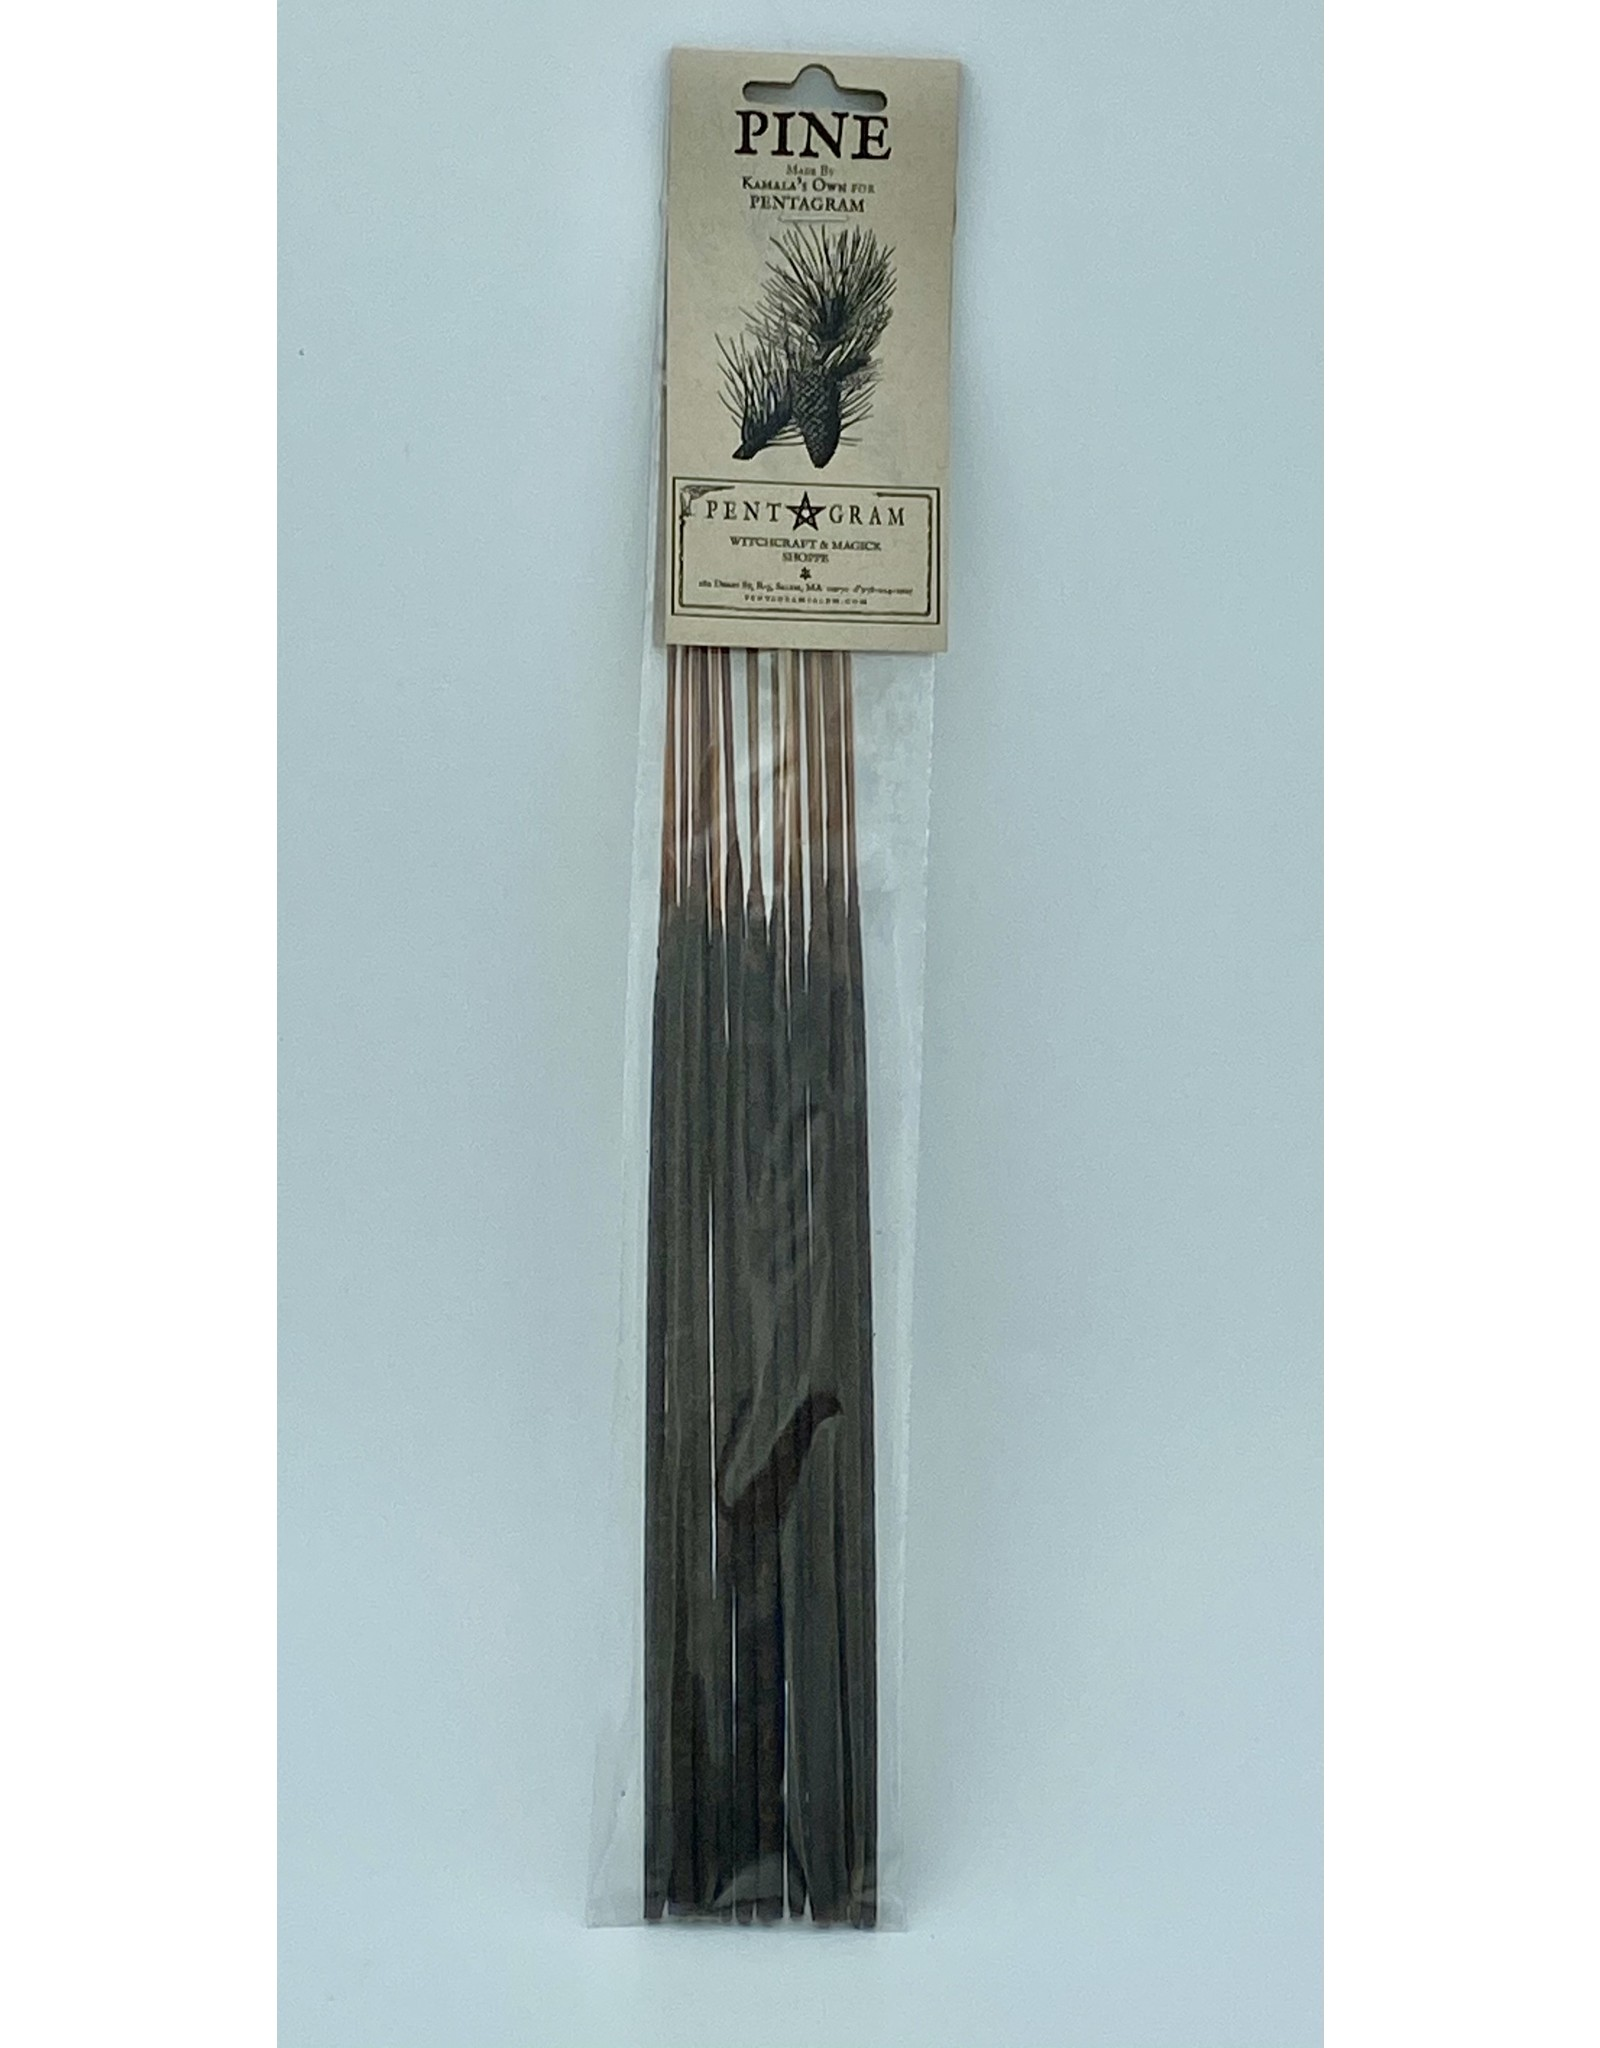 Pine Stick Incense